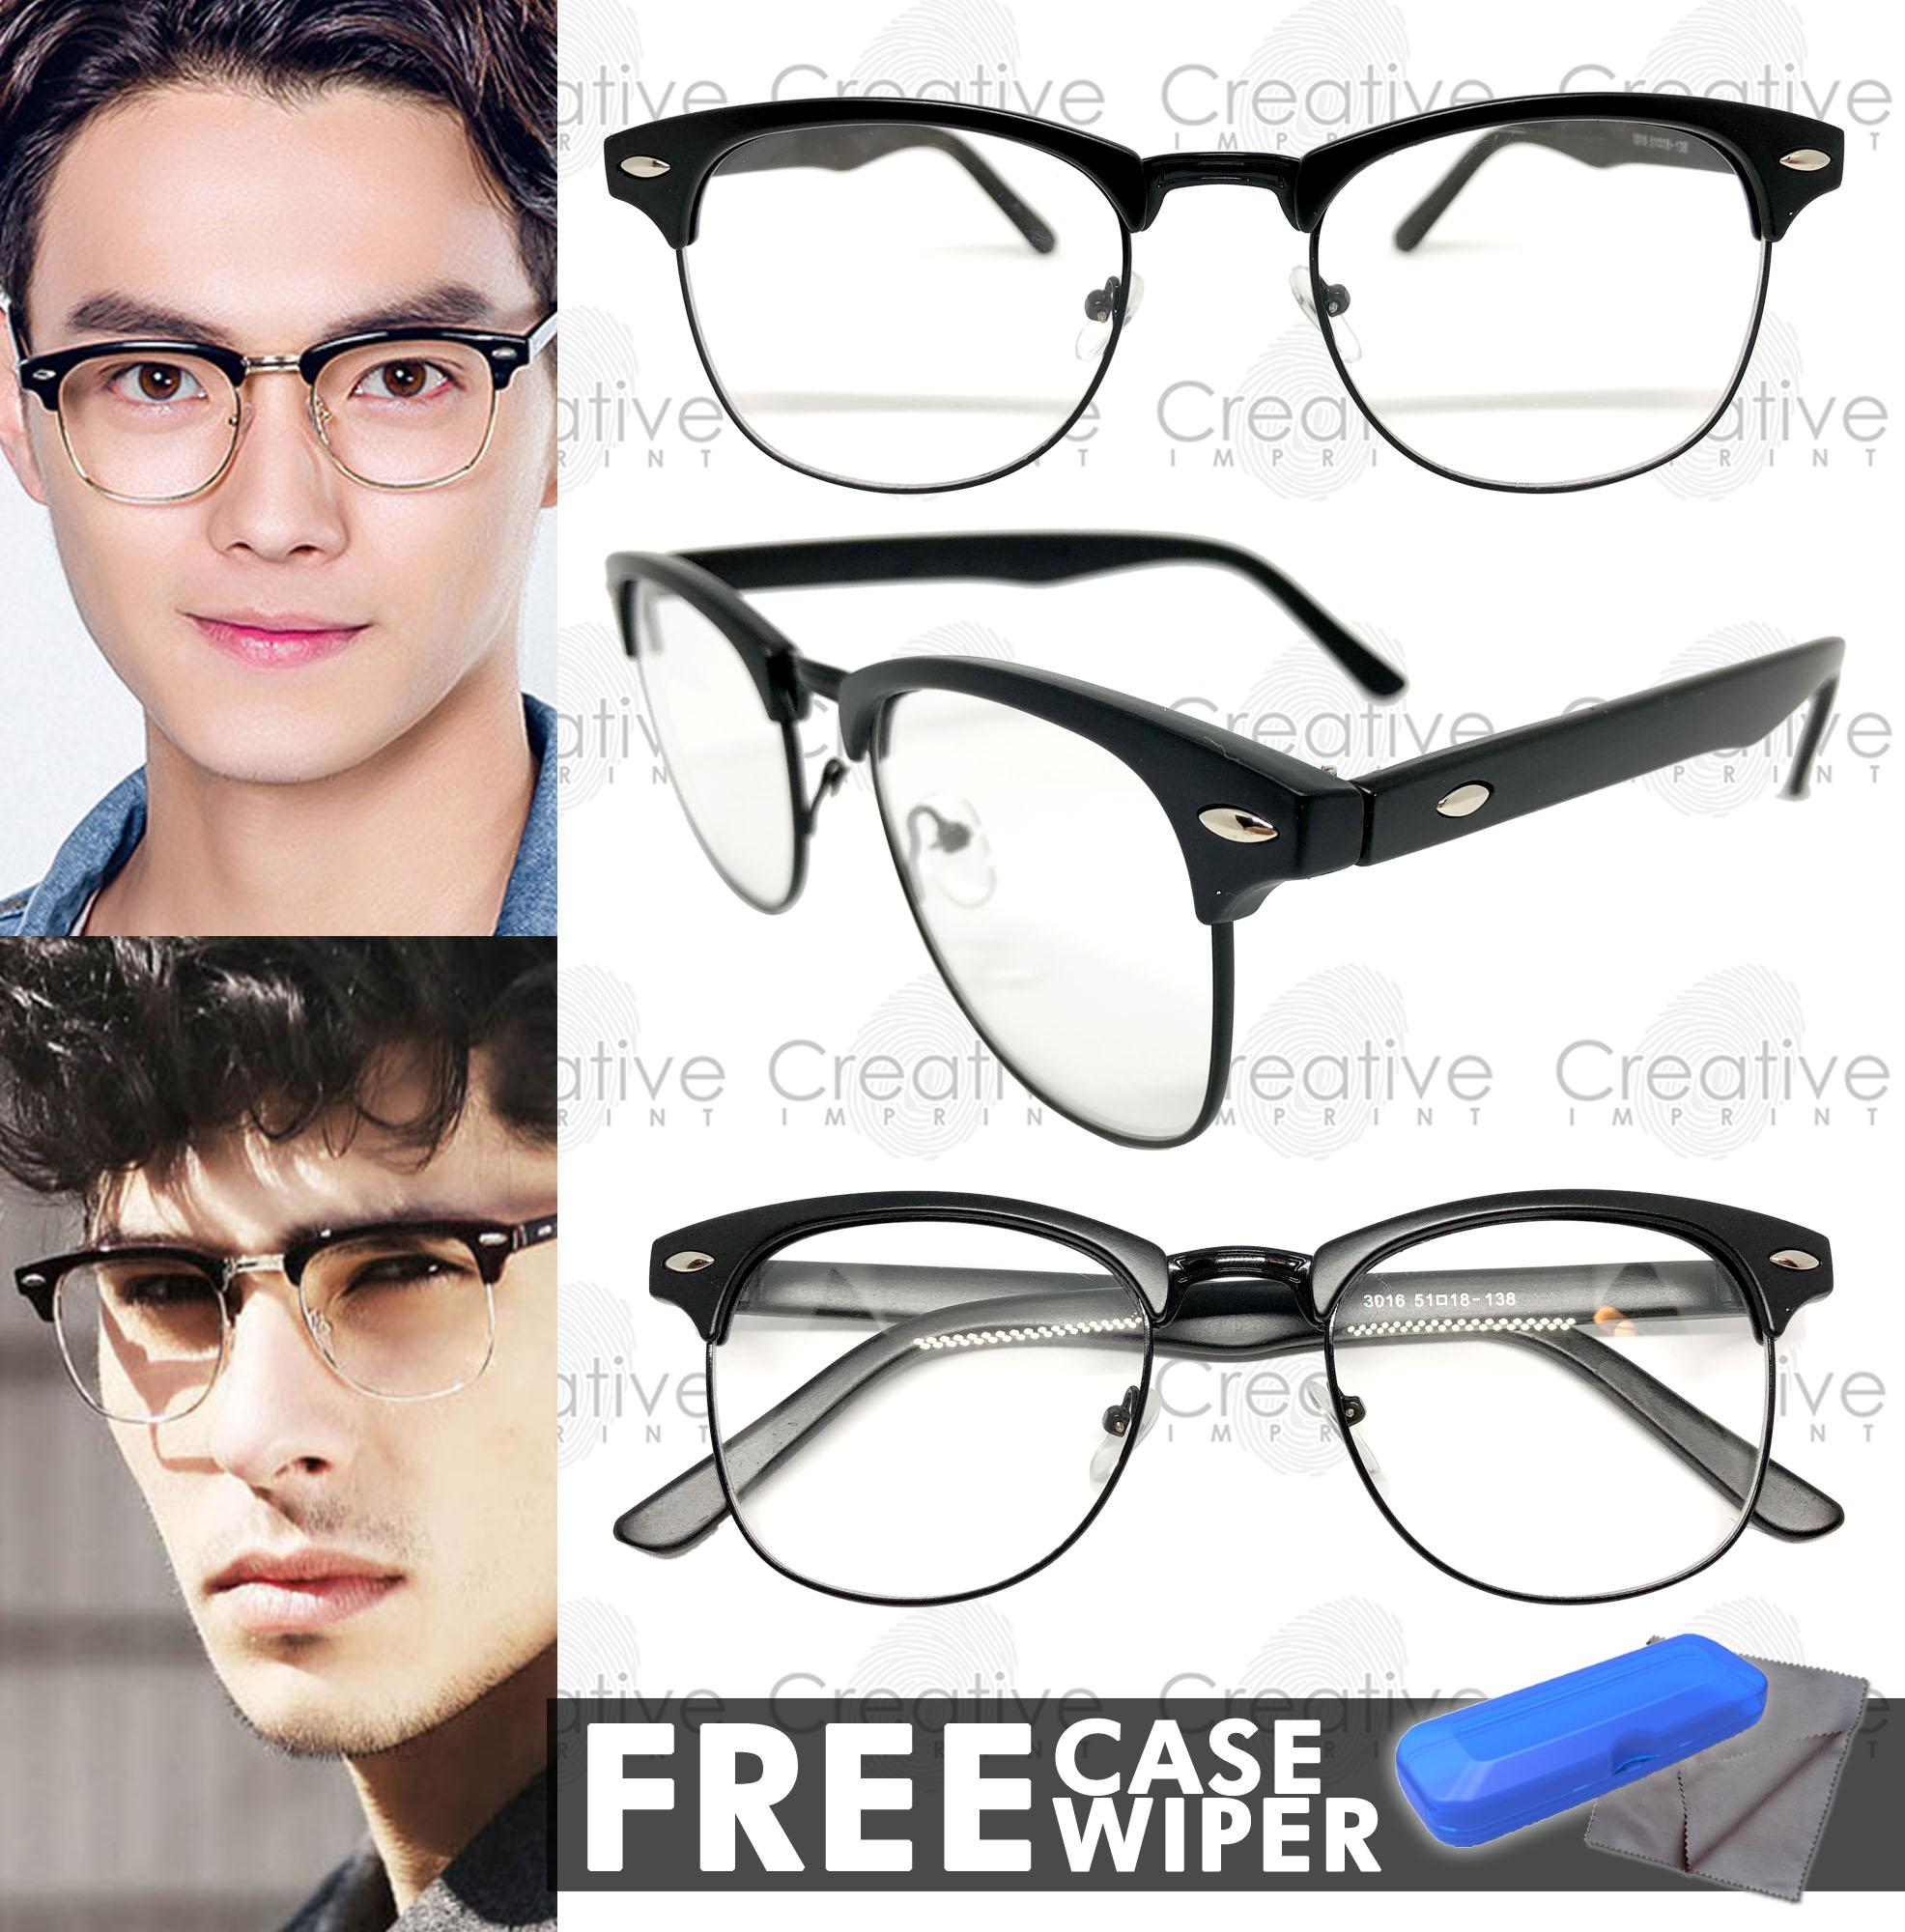 d0806c4ba2638 Creative Imprint Eyeglasses Replaceable Lens Clubmaster  01 Premium High  Quality Specs Metal Korean Style Computer